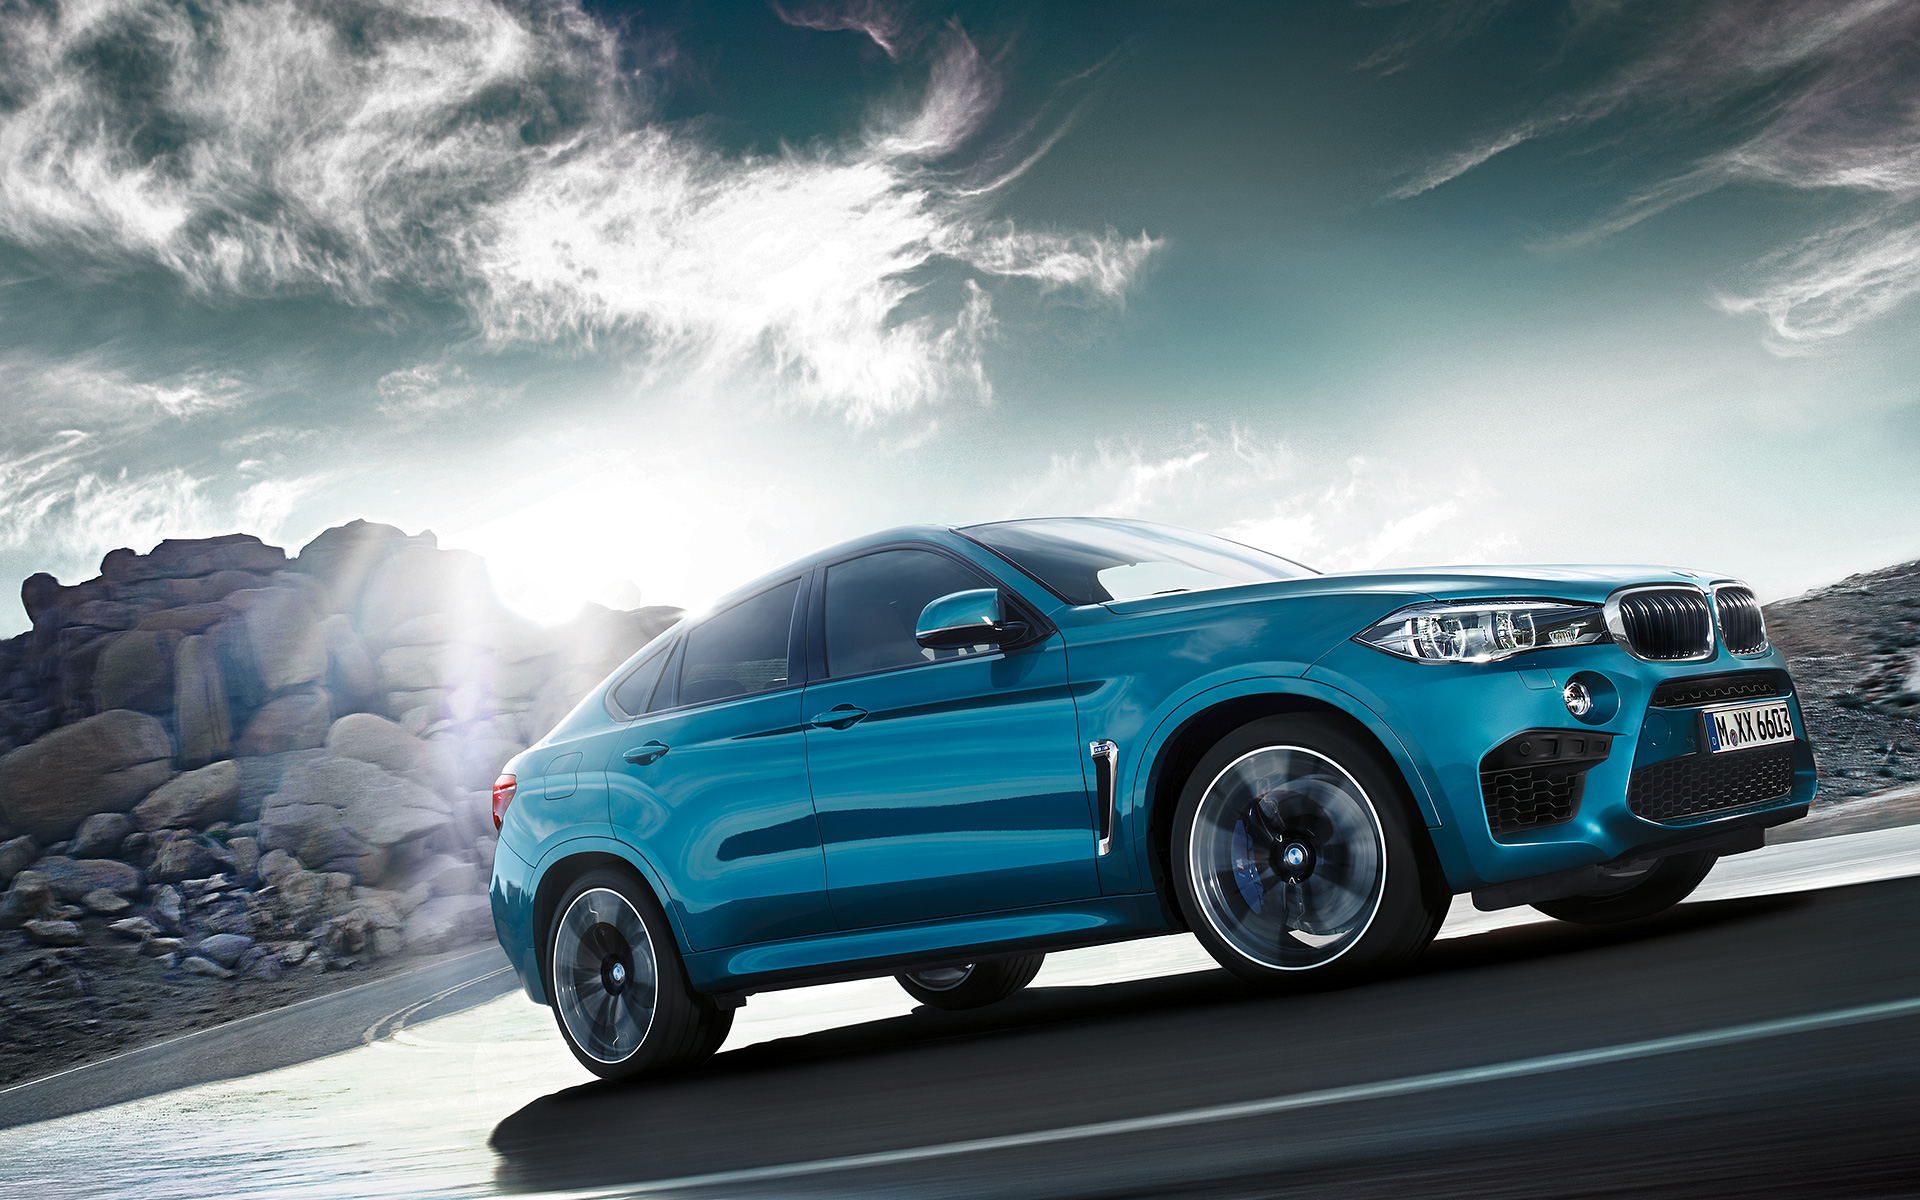 BMW X6 M Side View hill driving